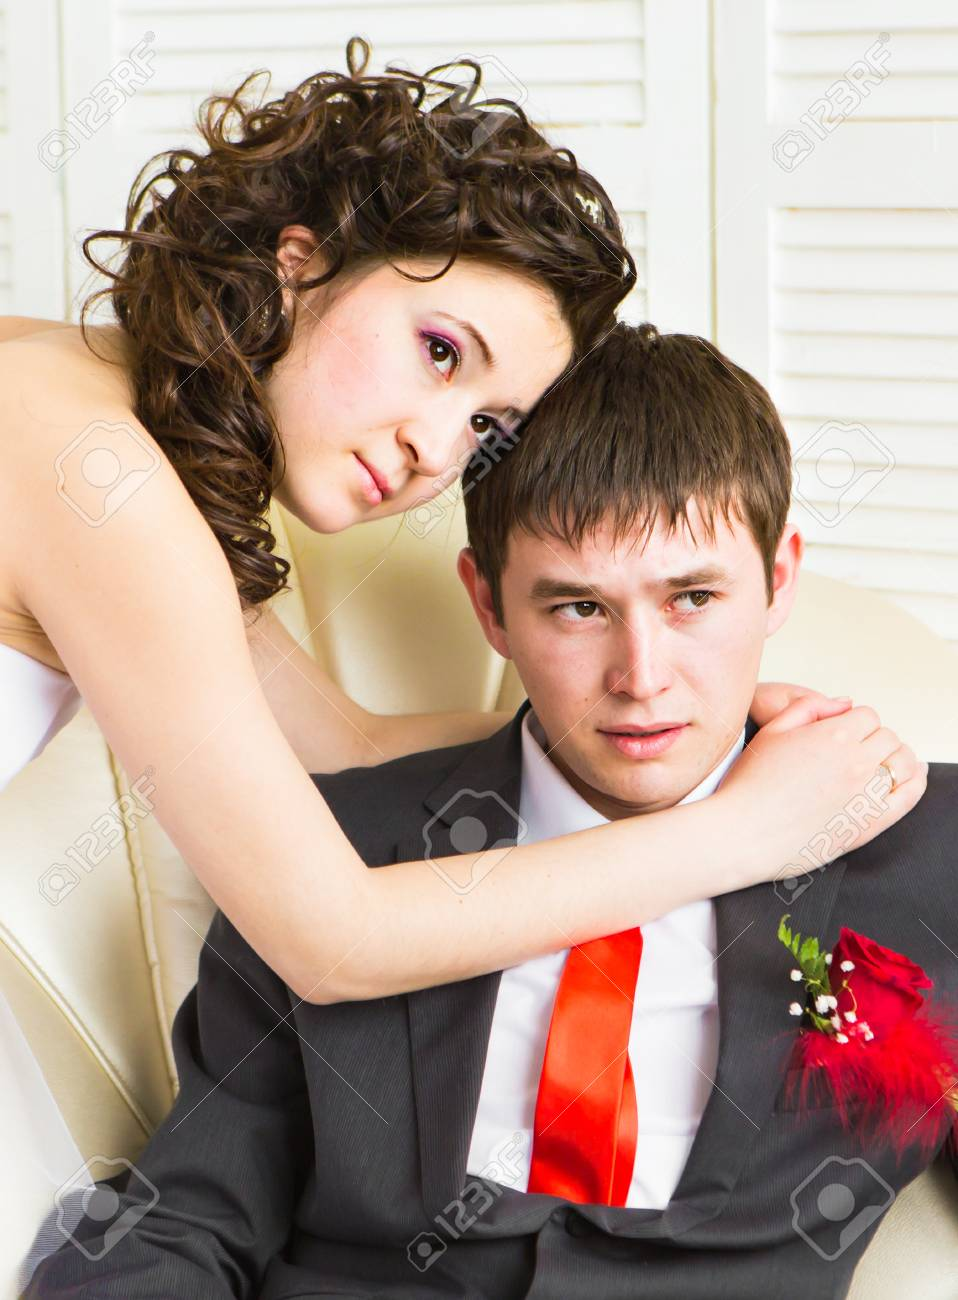 Beautiful Wedding Husband And Wife Lovers Man Woman Bride And Groom Stock